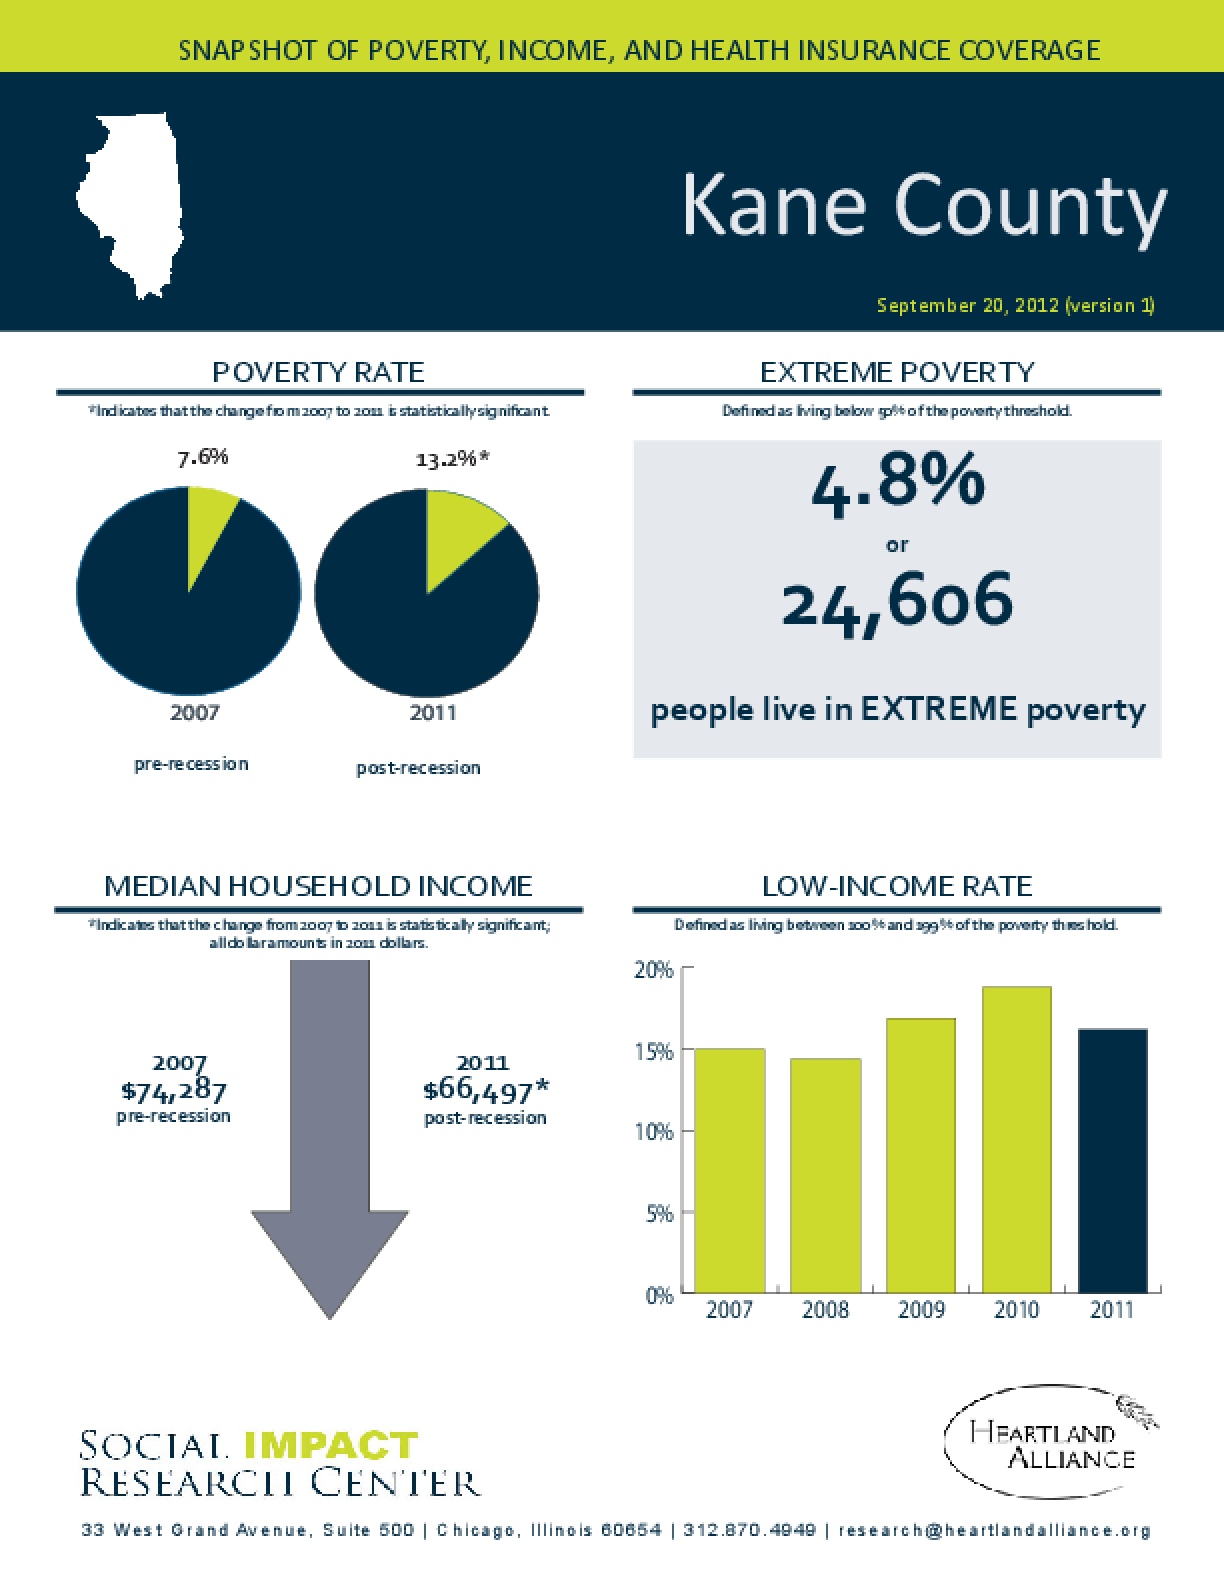 Kane County: Snapshot of Poverty, Income, and Health Insurance Coverage - 2011